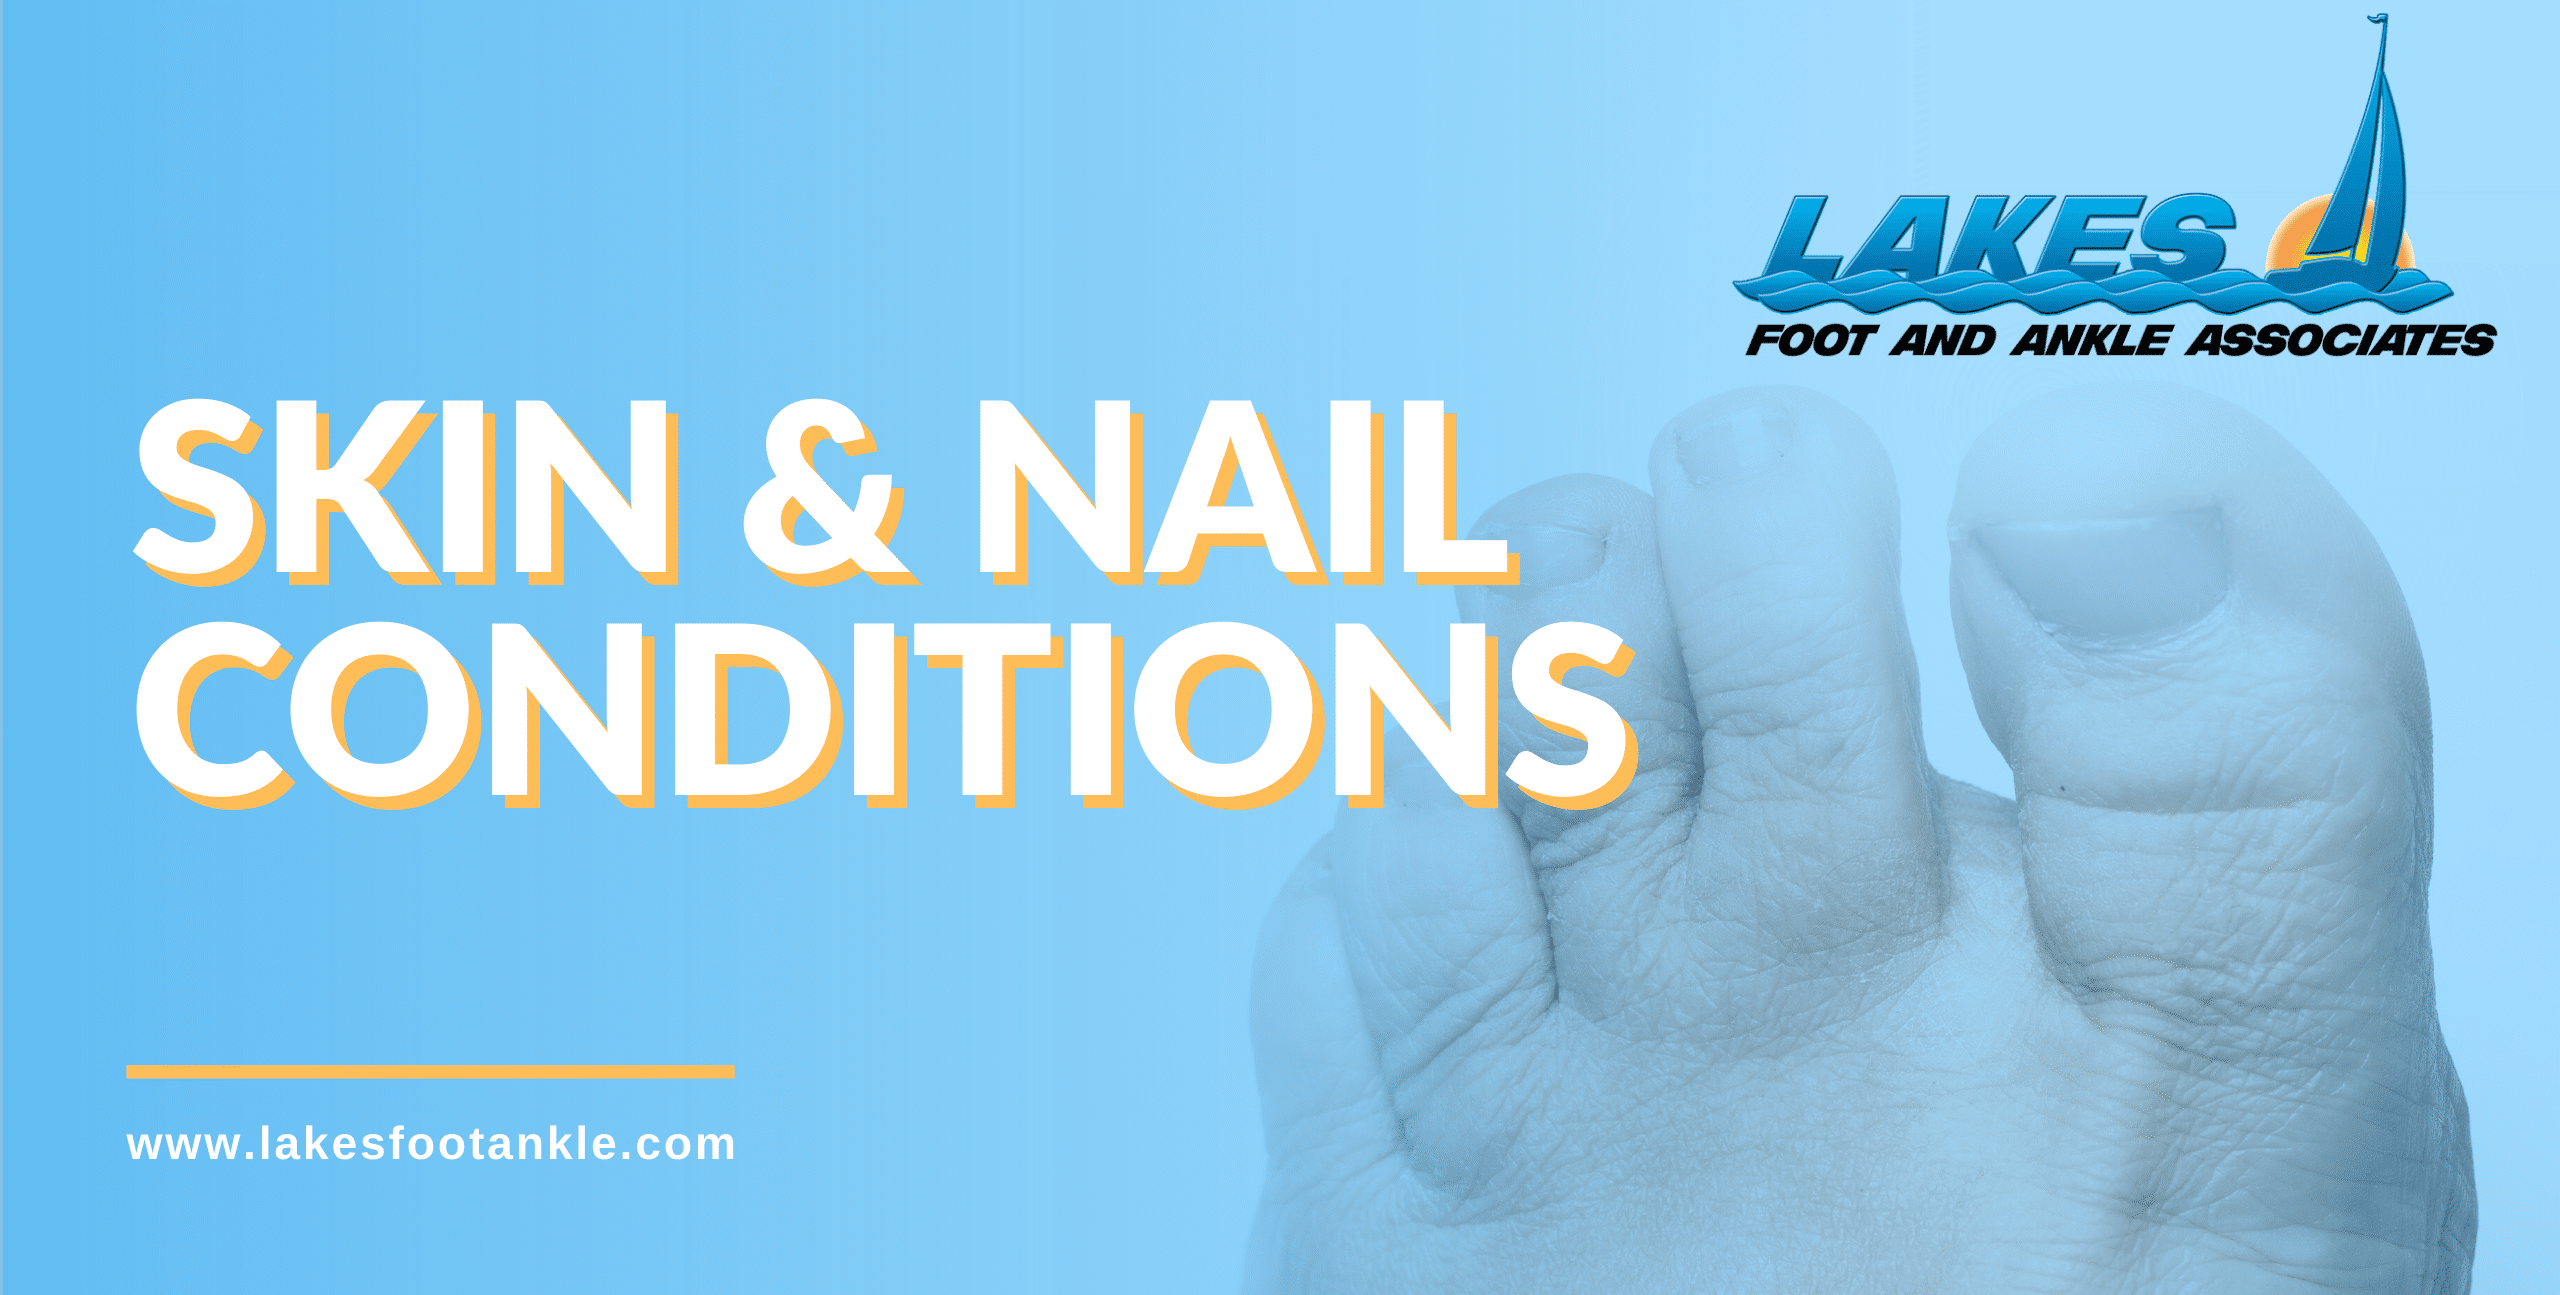 Skin & Nail Conditions